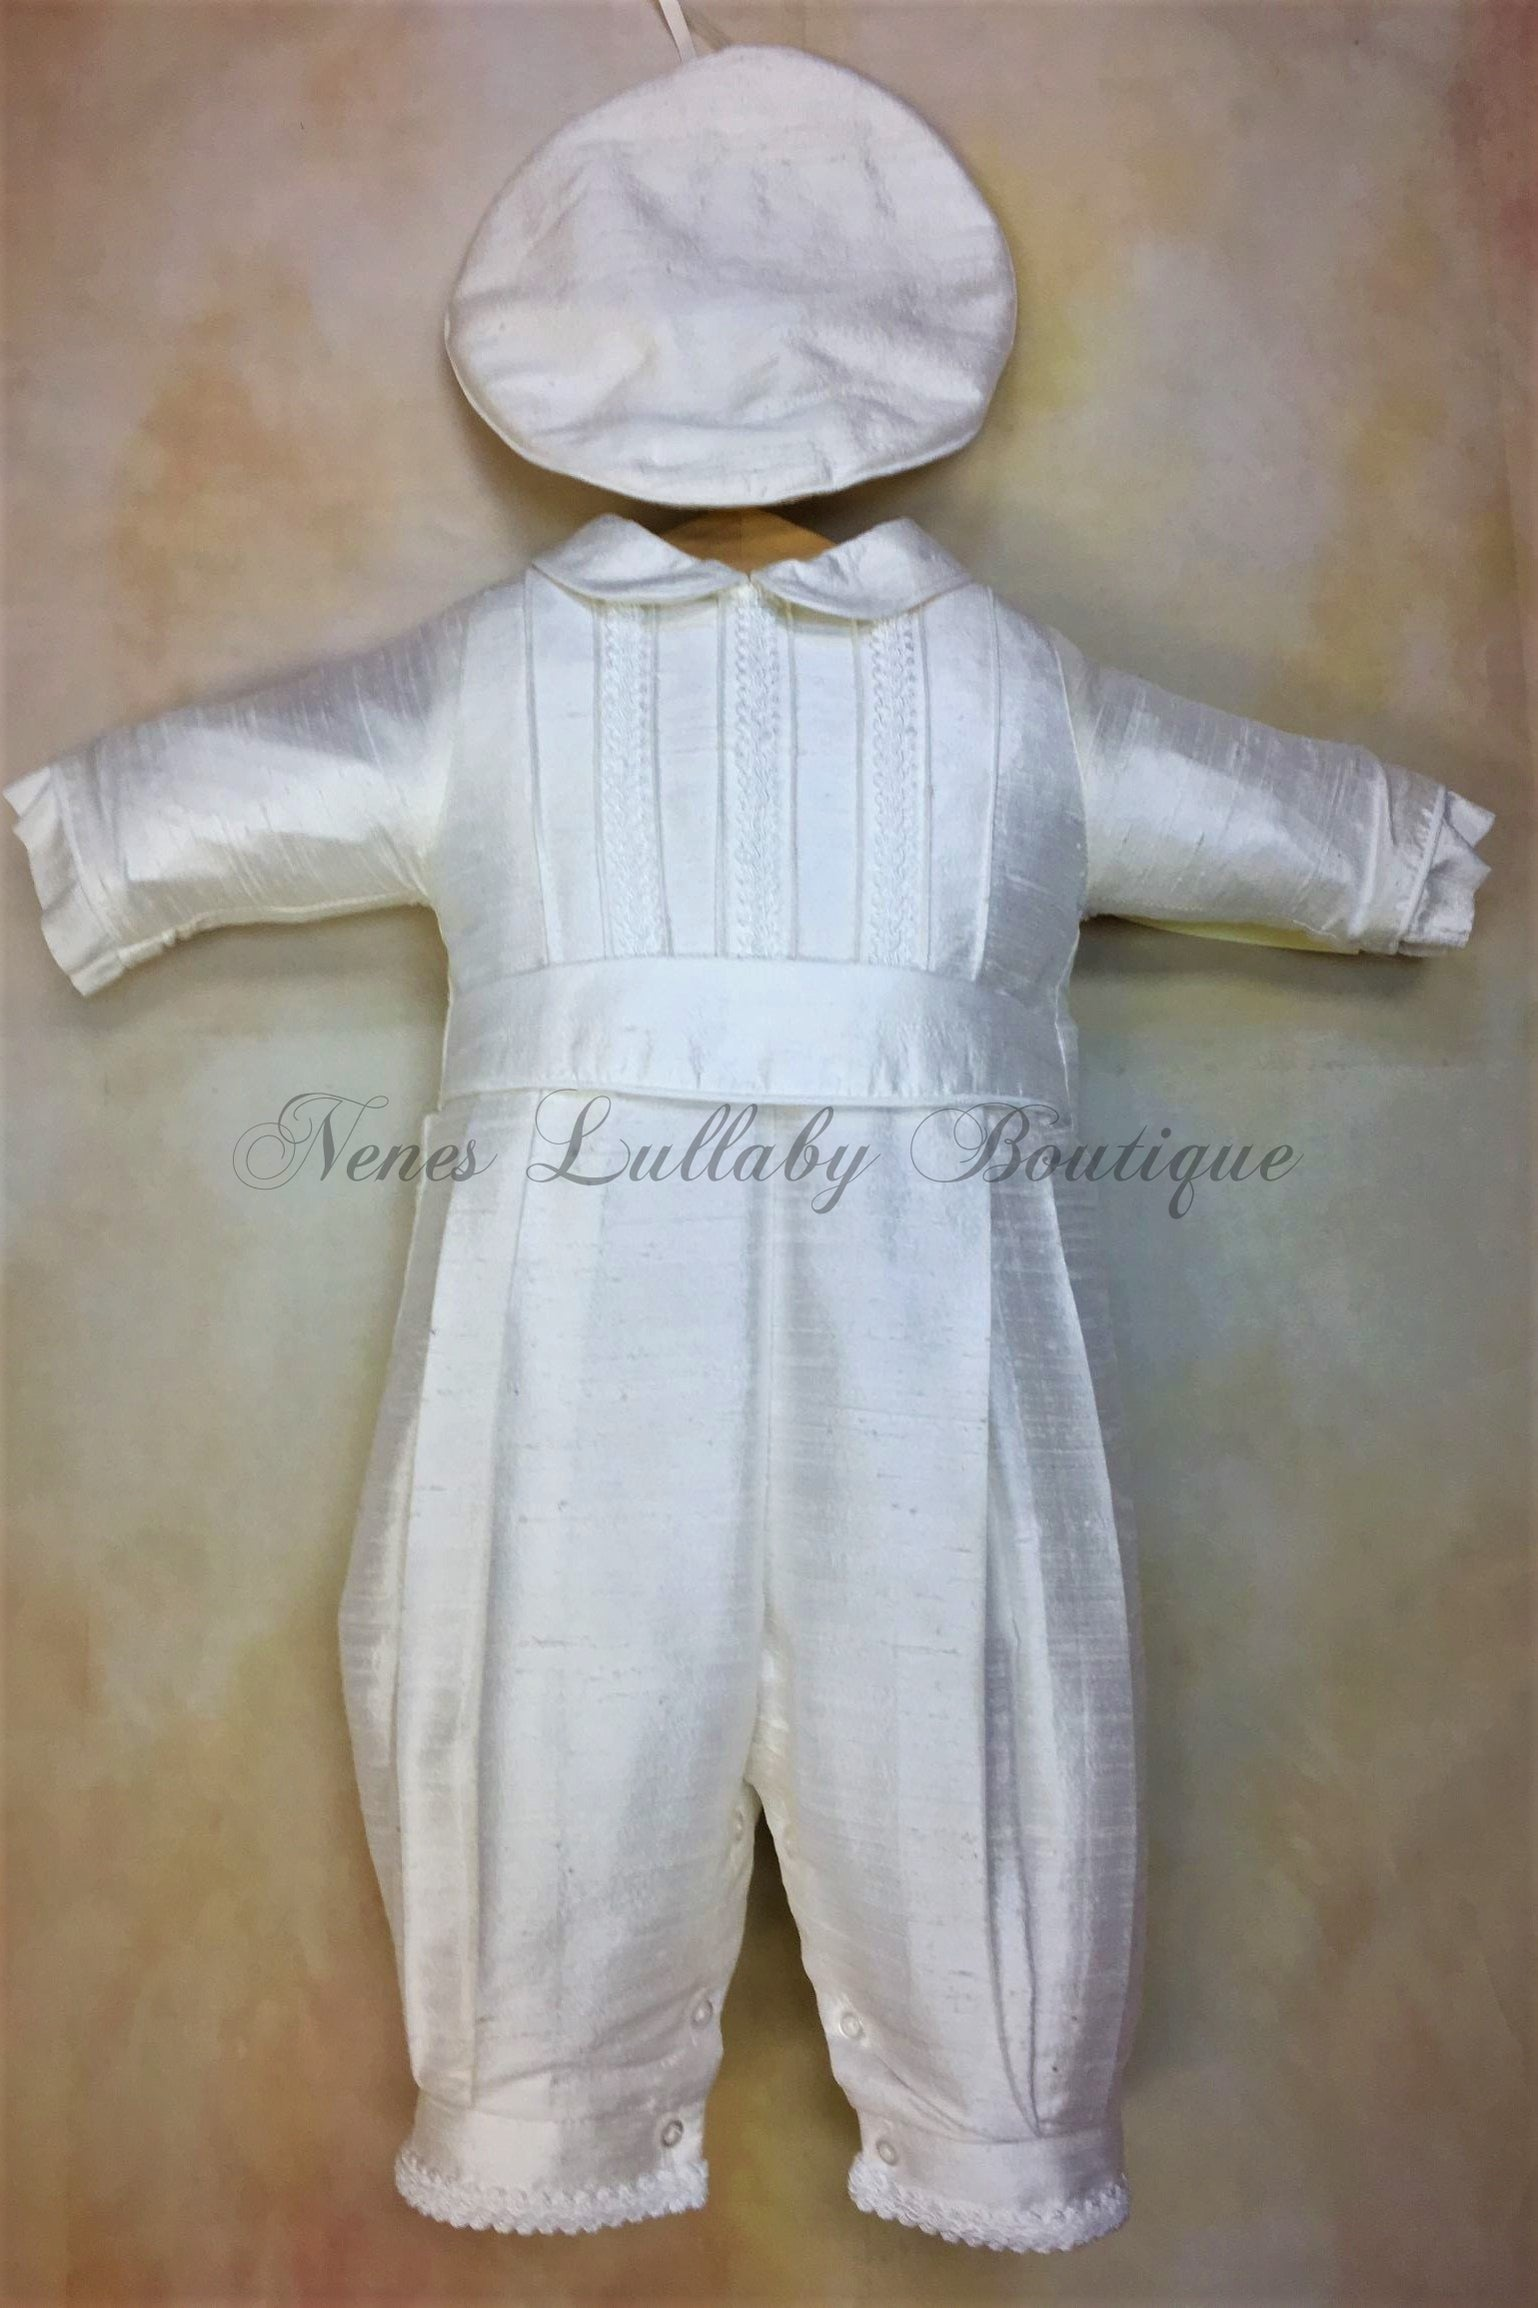 Little Prince Silk Christening outfit by Piccolo Bacio PB_Little_Prince_sk__ls_lp - Nenes Lullaby Boutique Inc